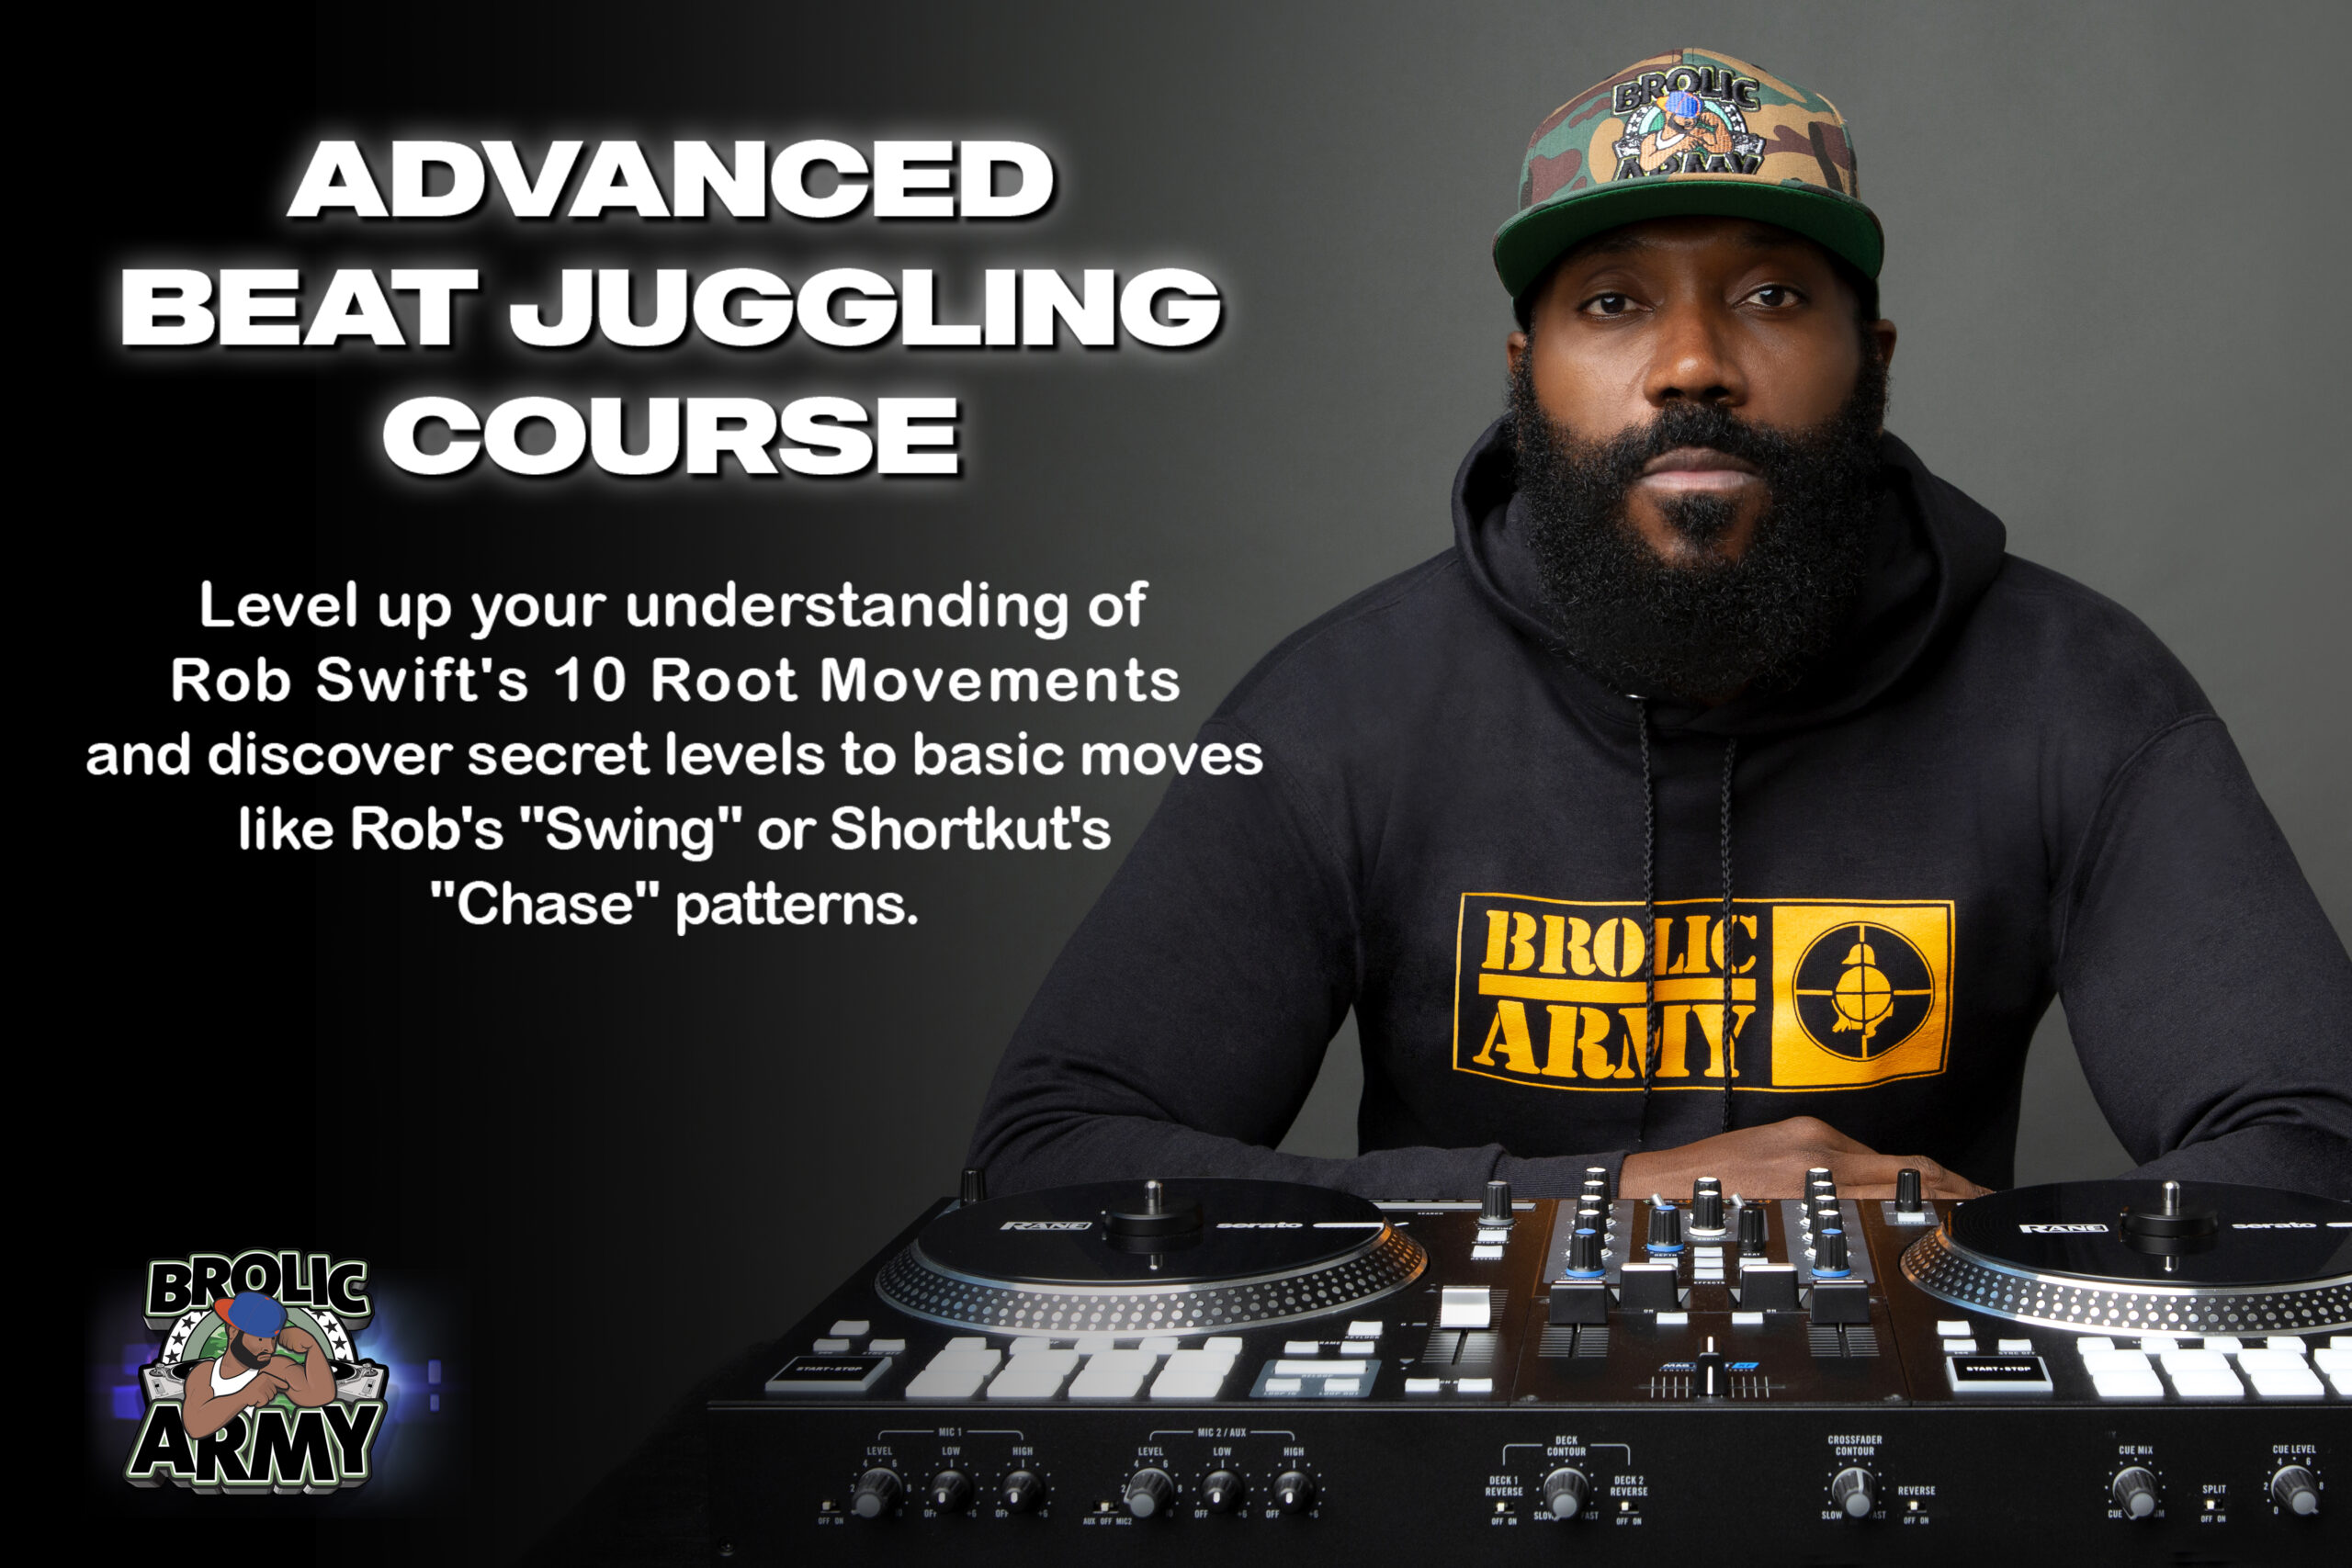 Advanced Beat Juggling Course Group